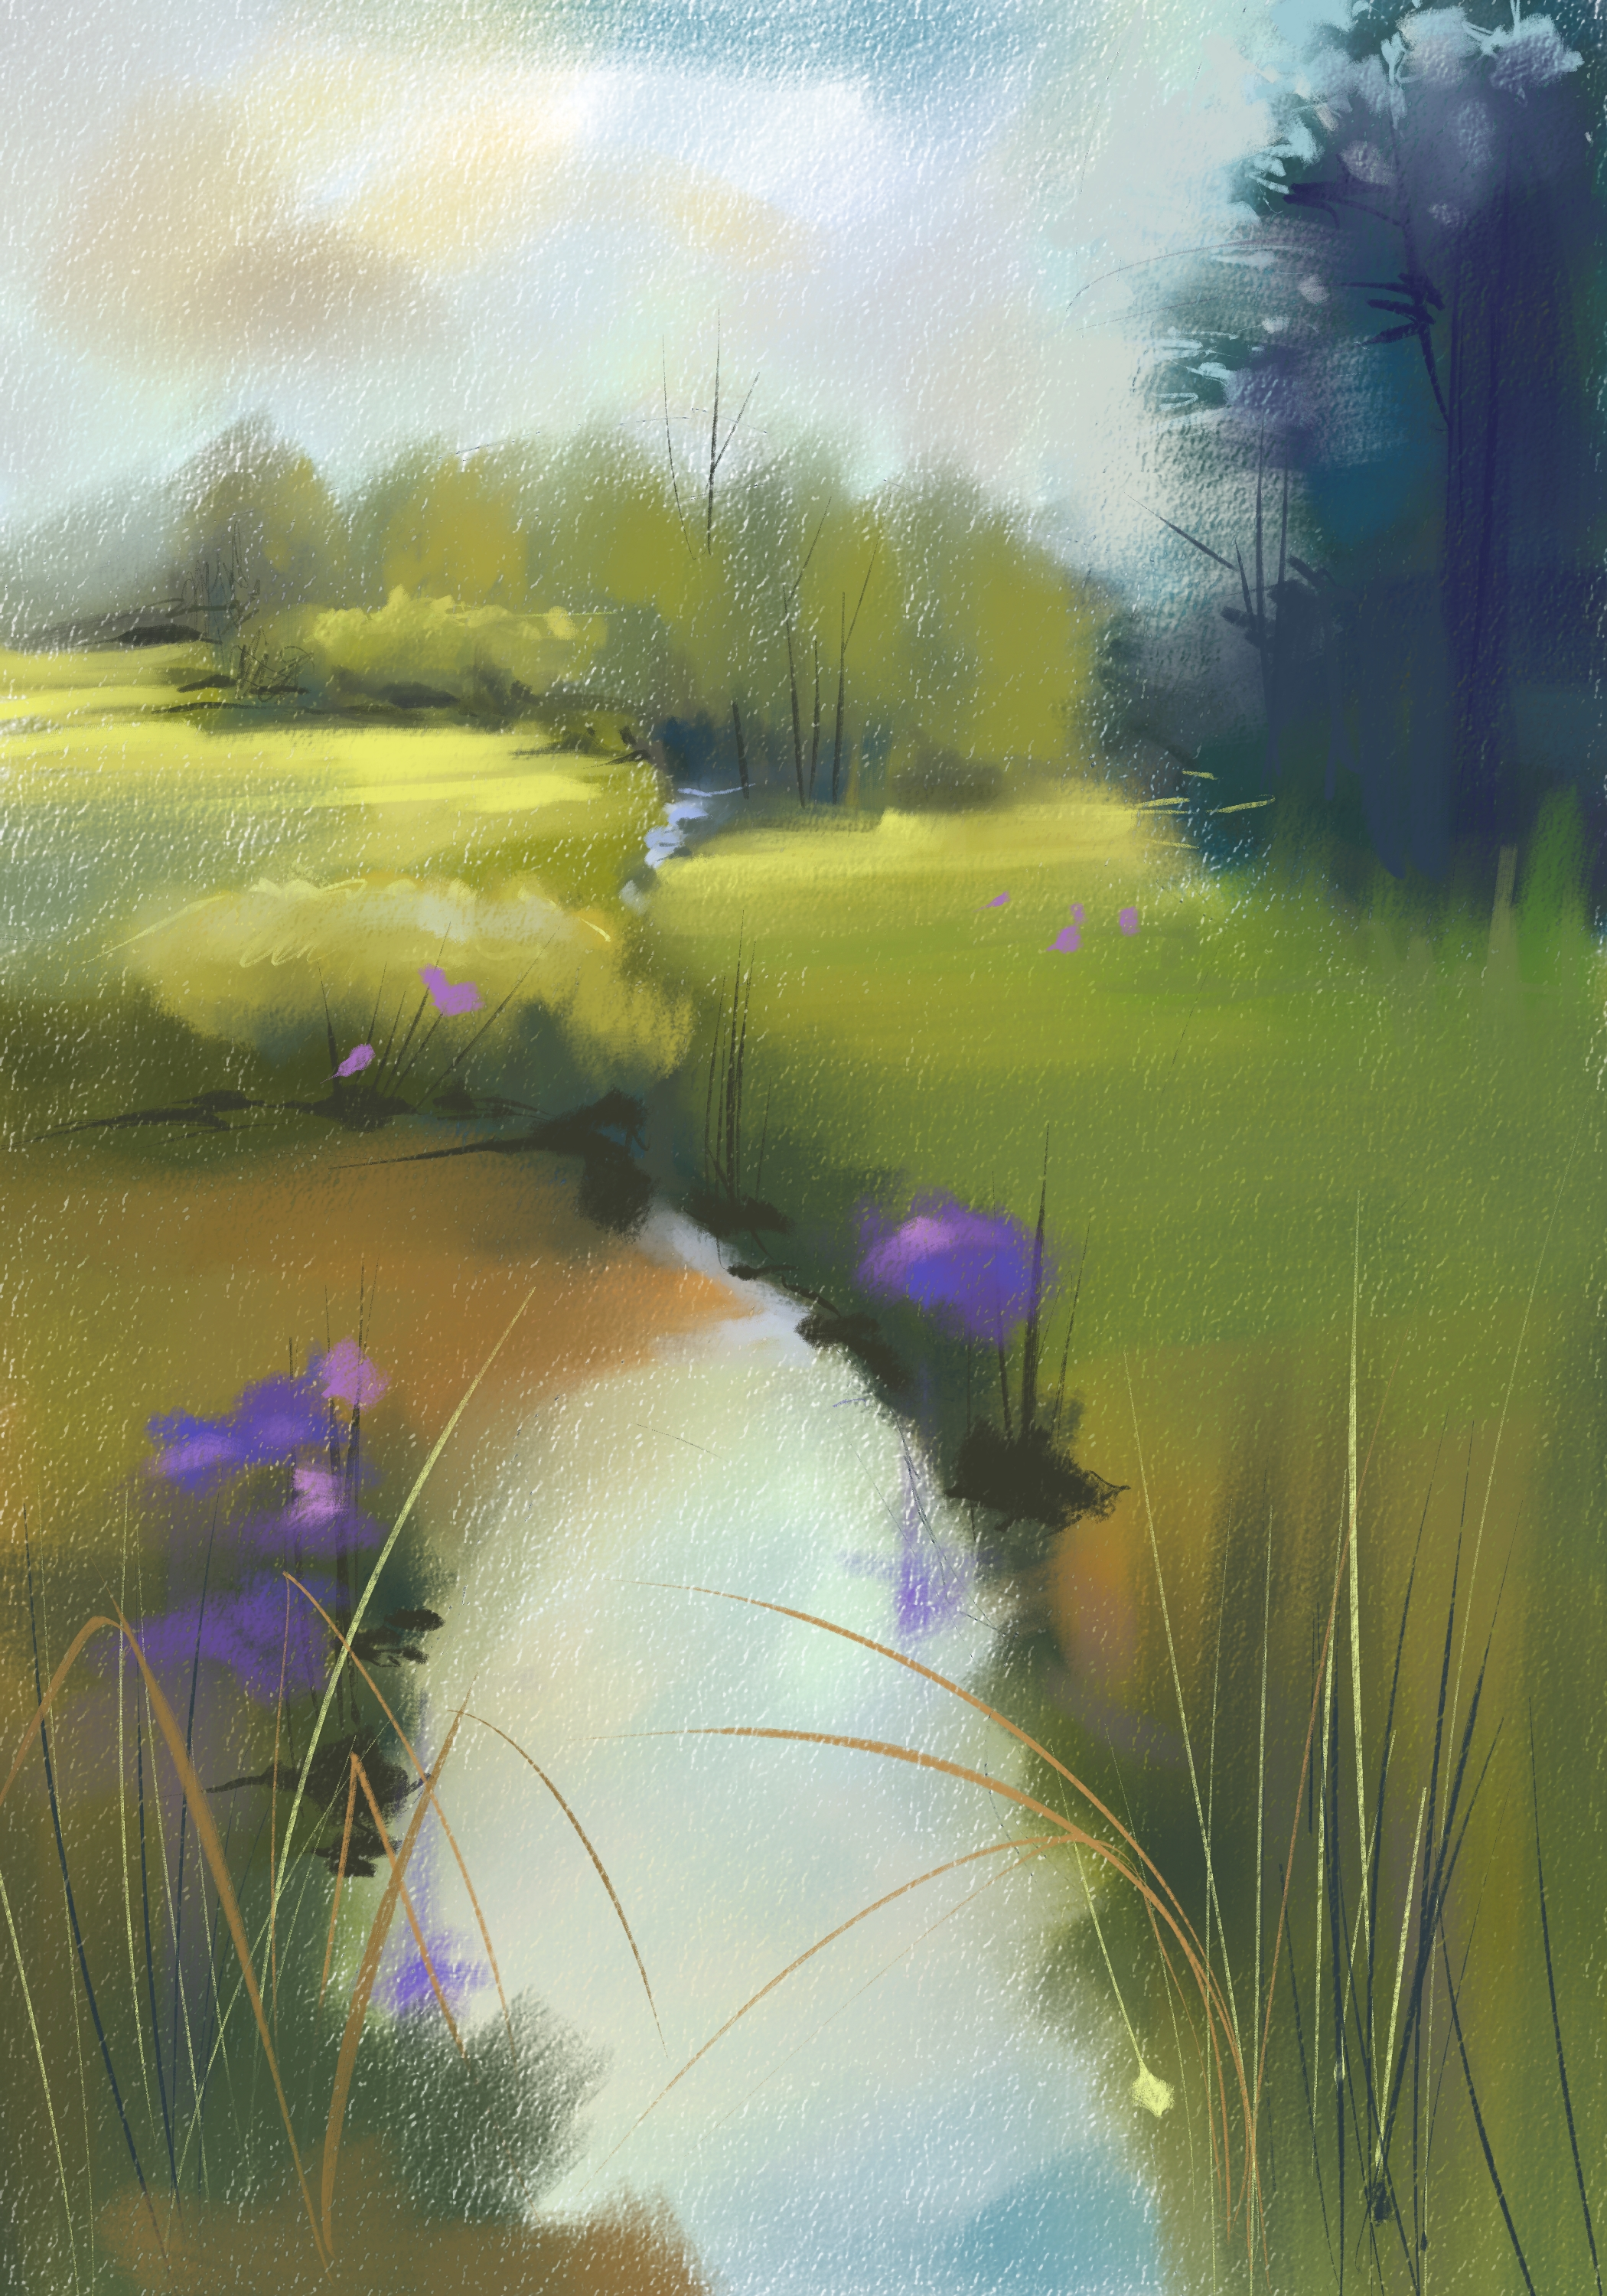 Poole Road Stream, Corel Painter 2016, Custom Pastel Variants, Skip Allen